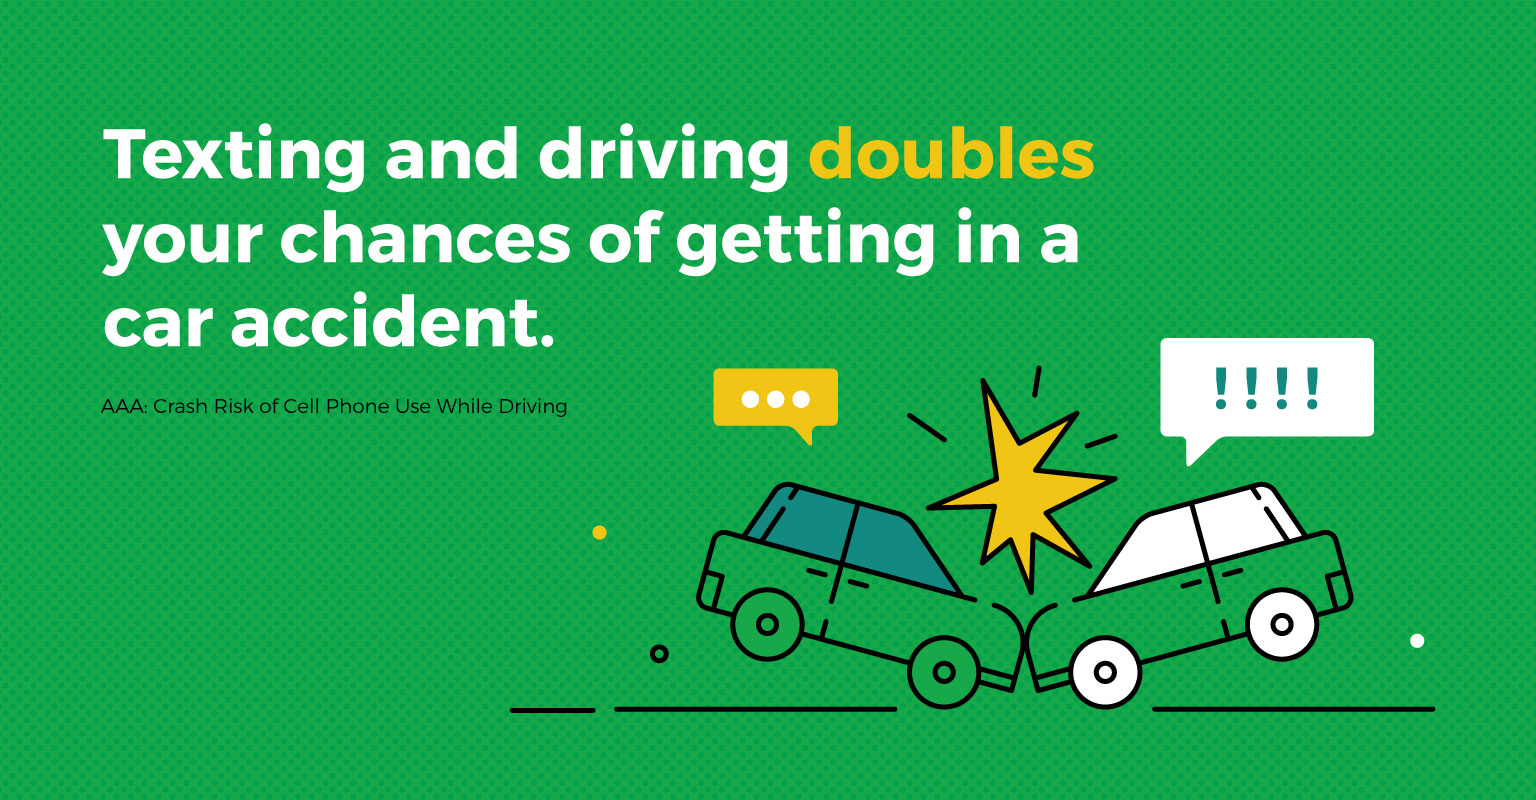 Dangers Of Texting And Driving >> 60 Texting And Driving Statistics 2019 The Simple Dollar